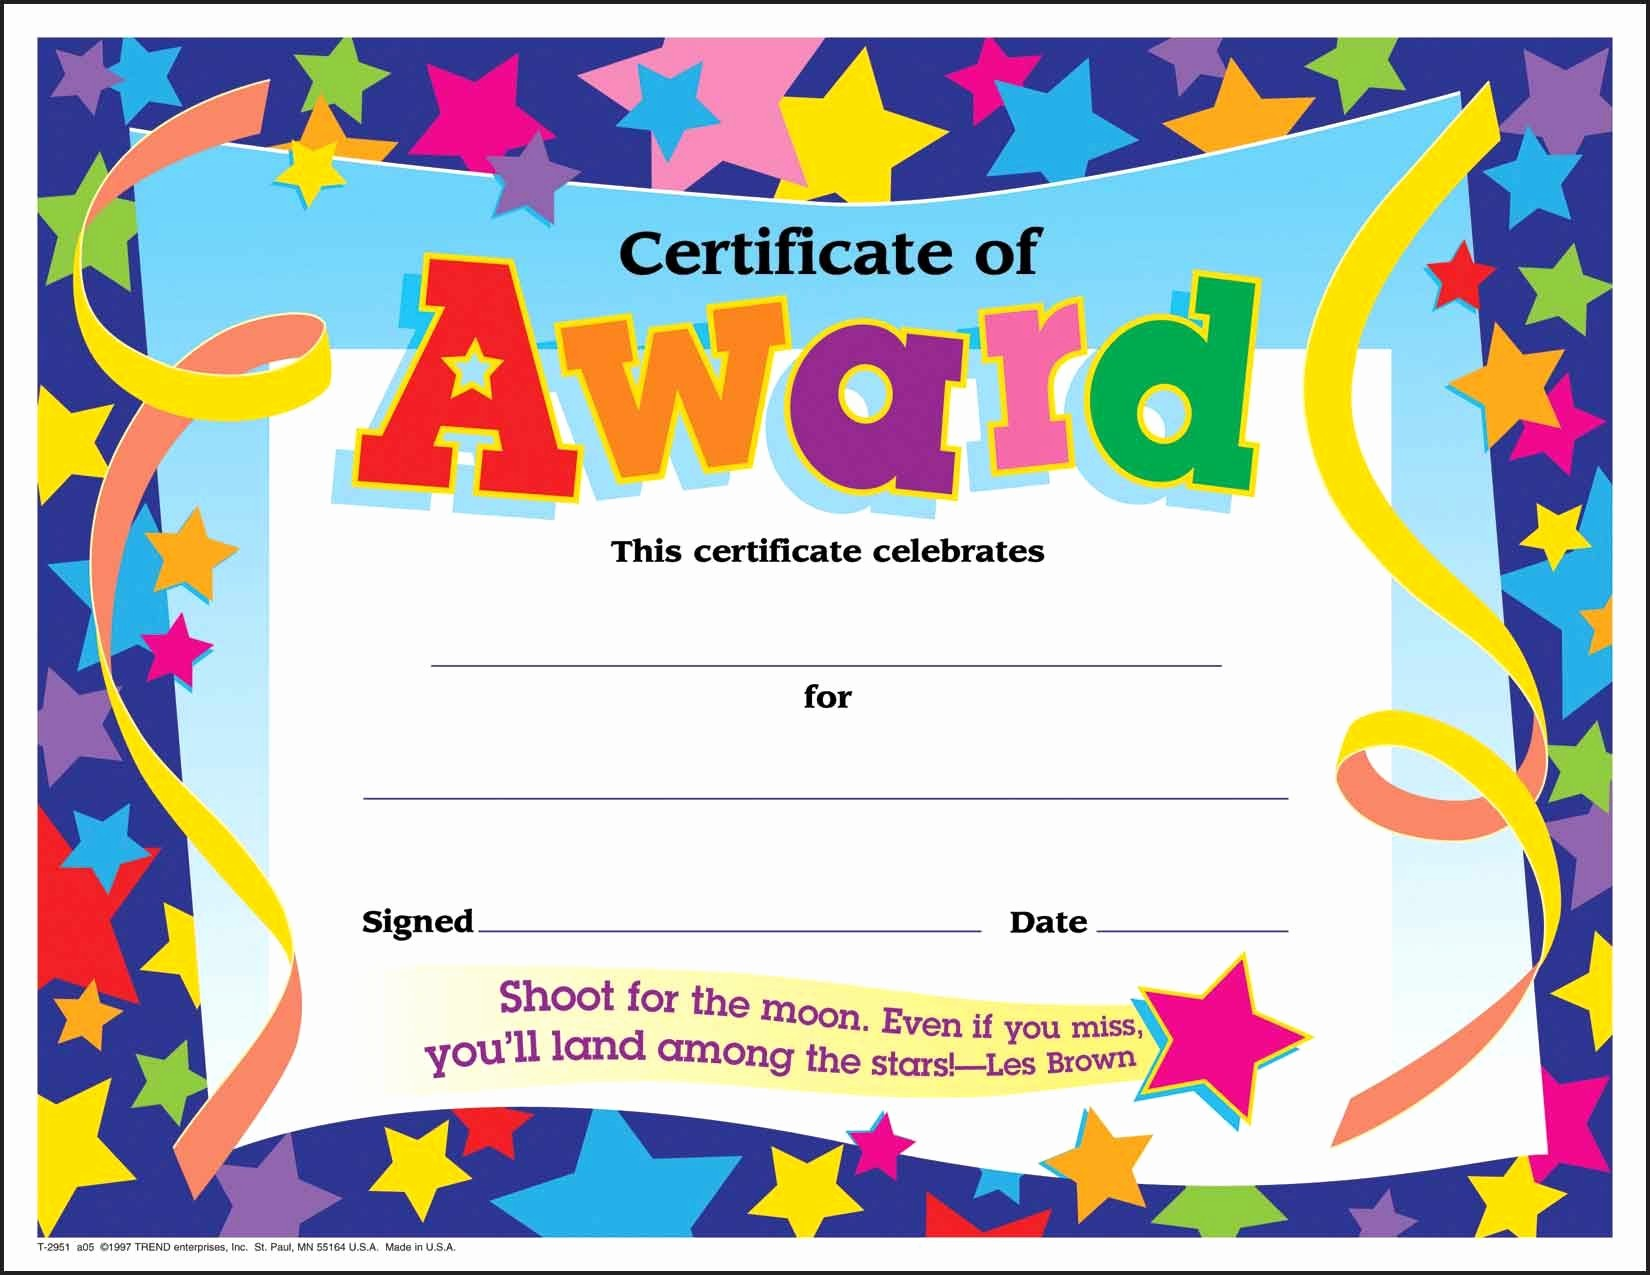 Certificate Of Recognition for Kids Lovely Certificate Template for Kids Free Certificate Templates